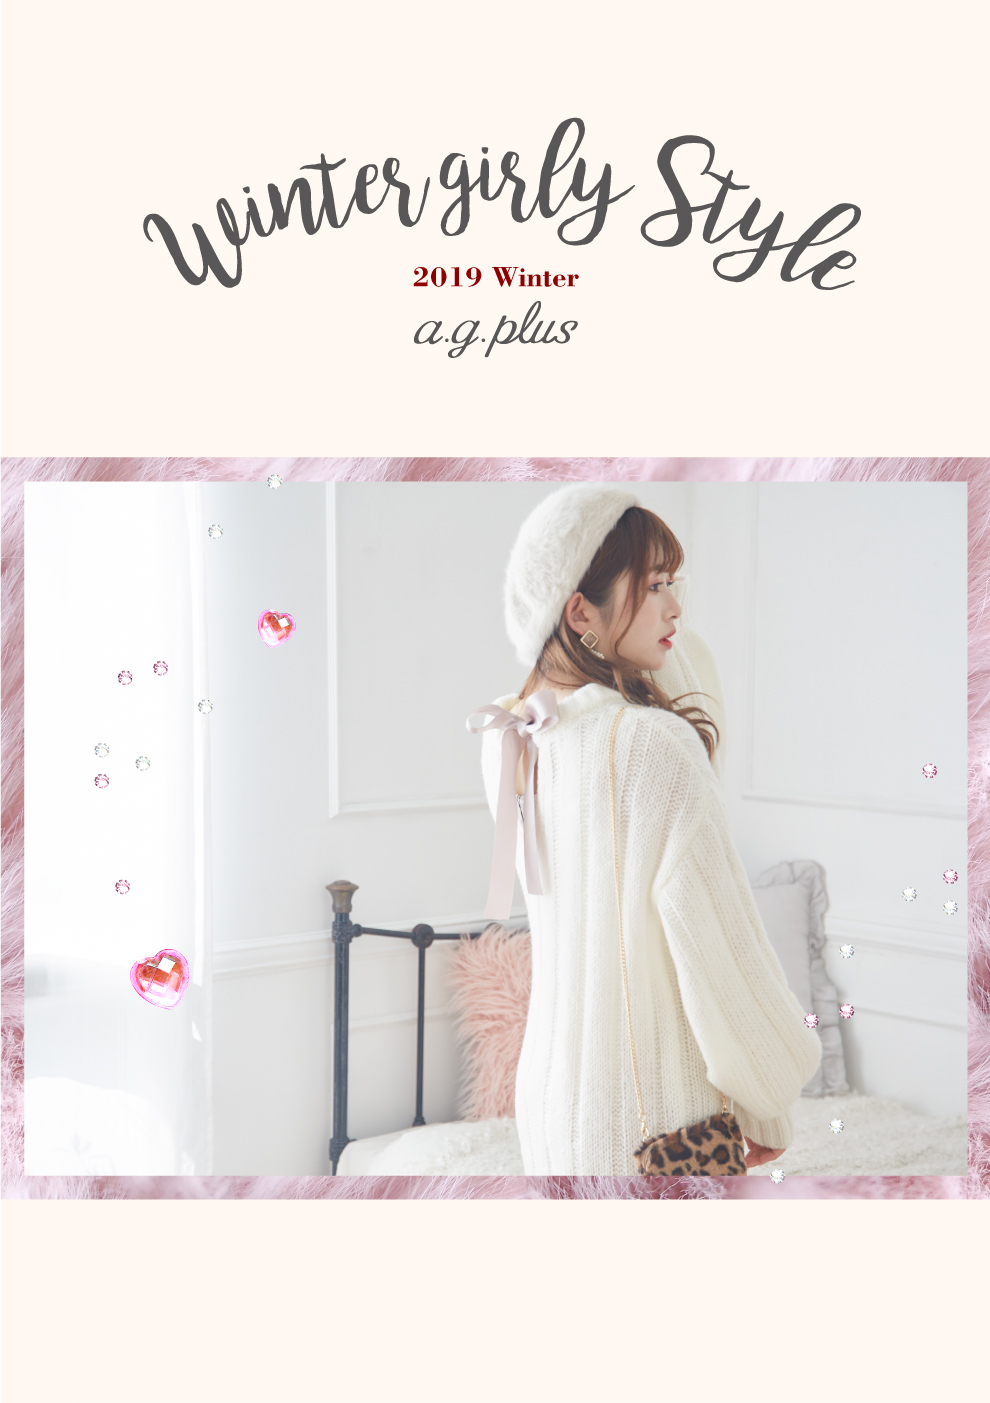 【a.g.plus】2019 Winter girly Style